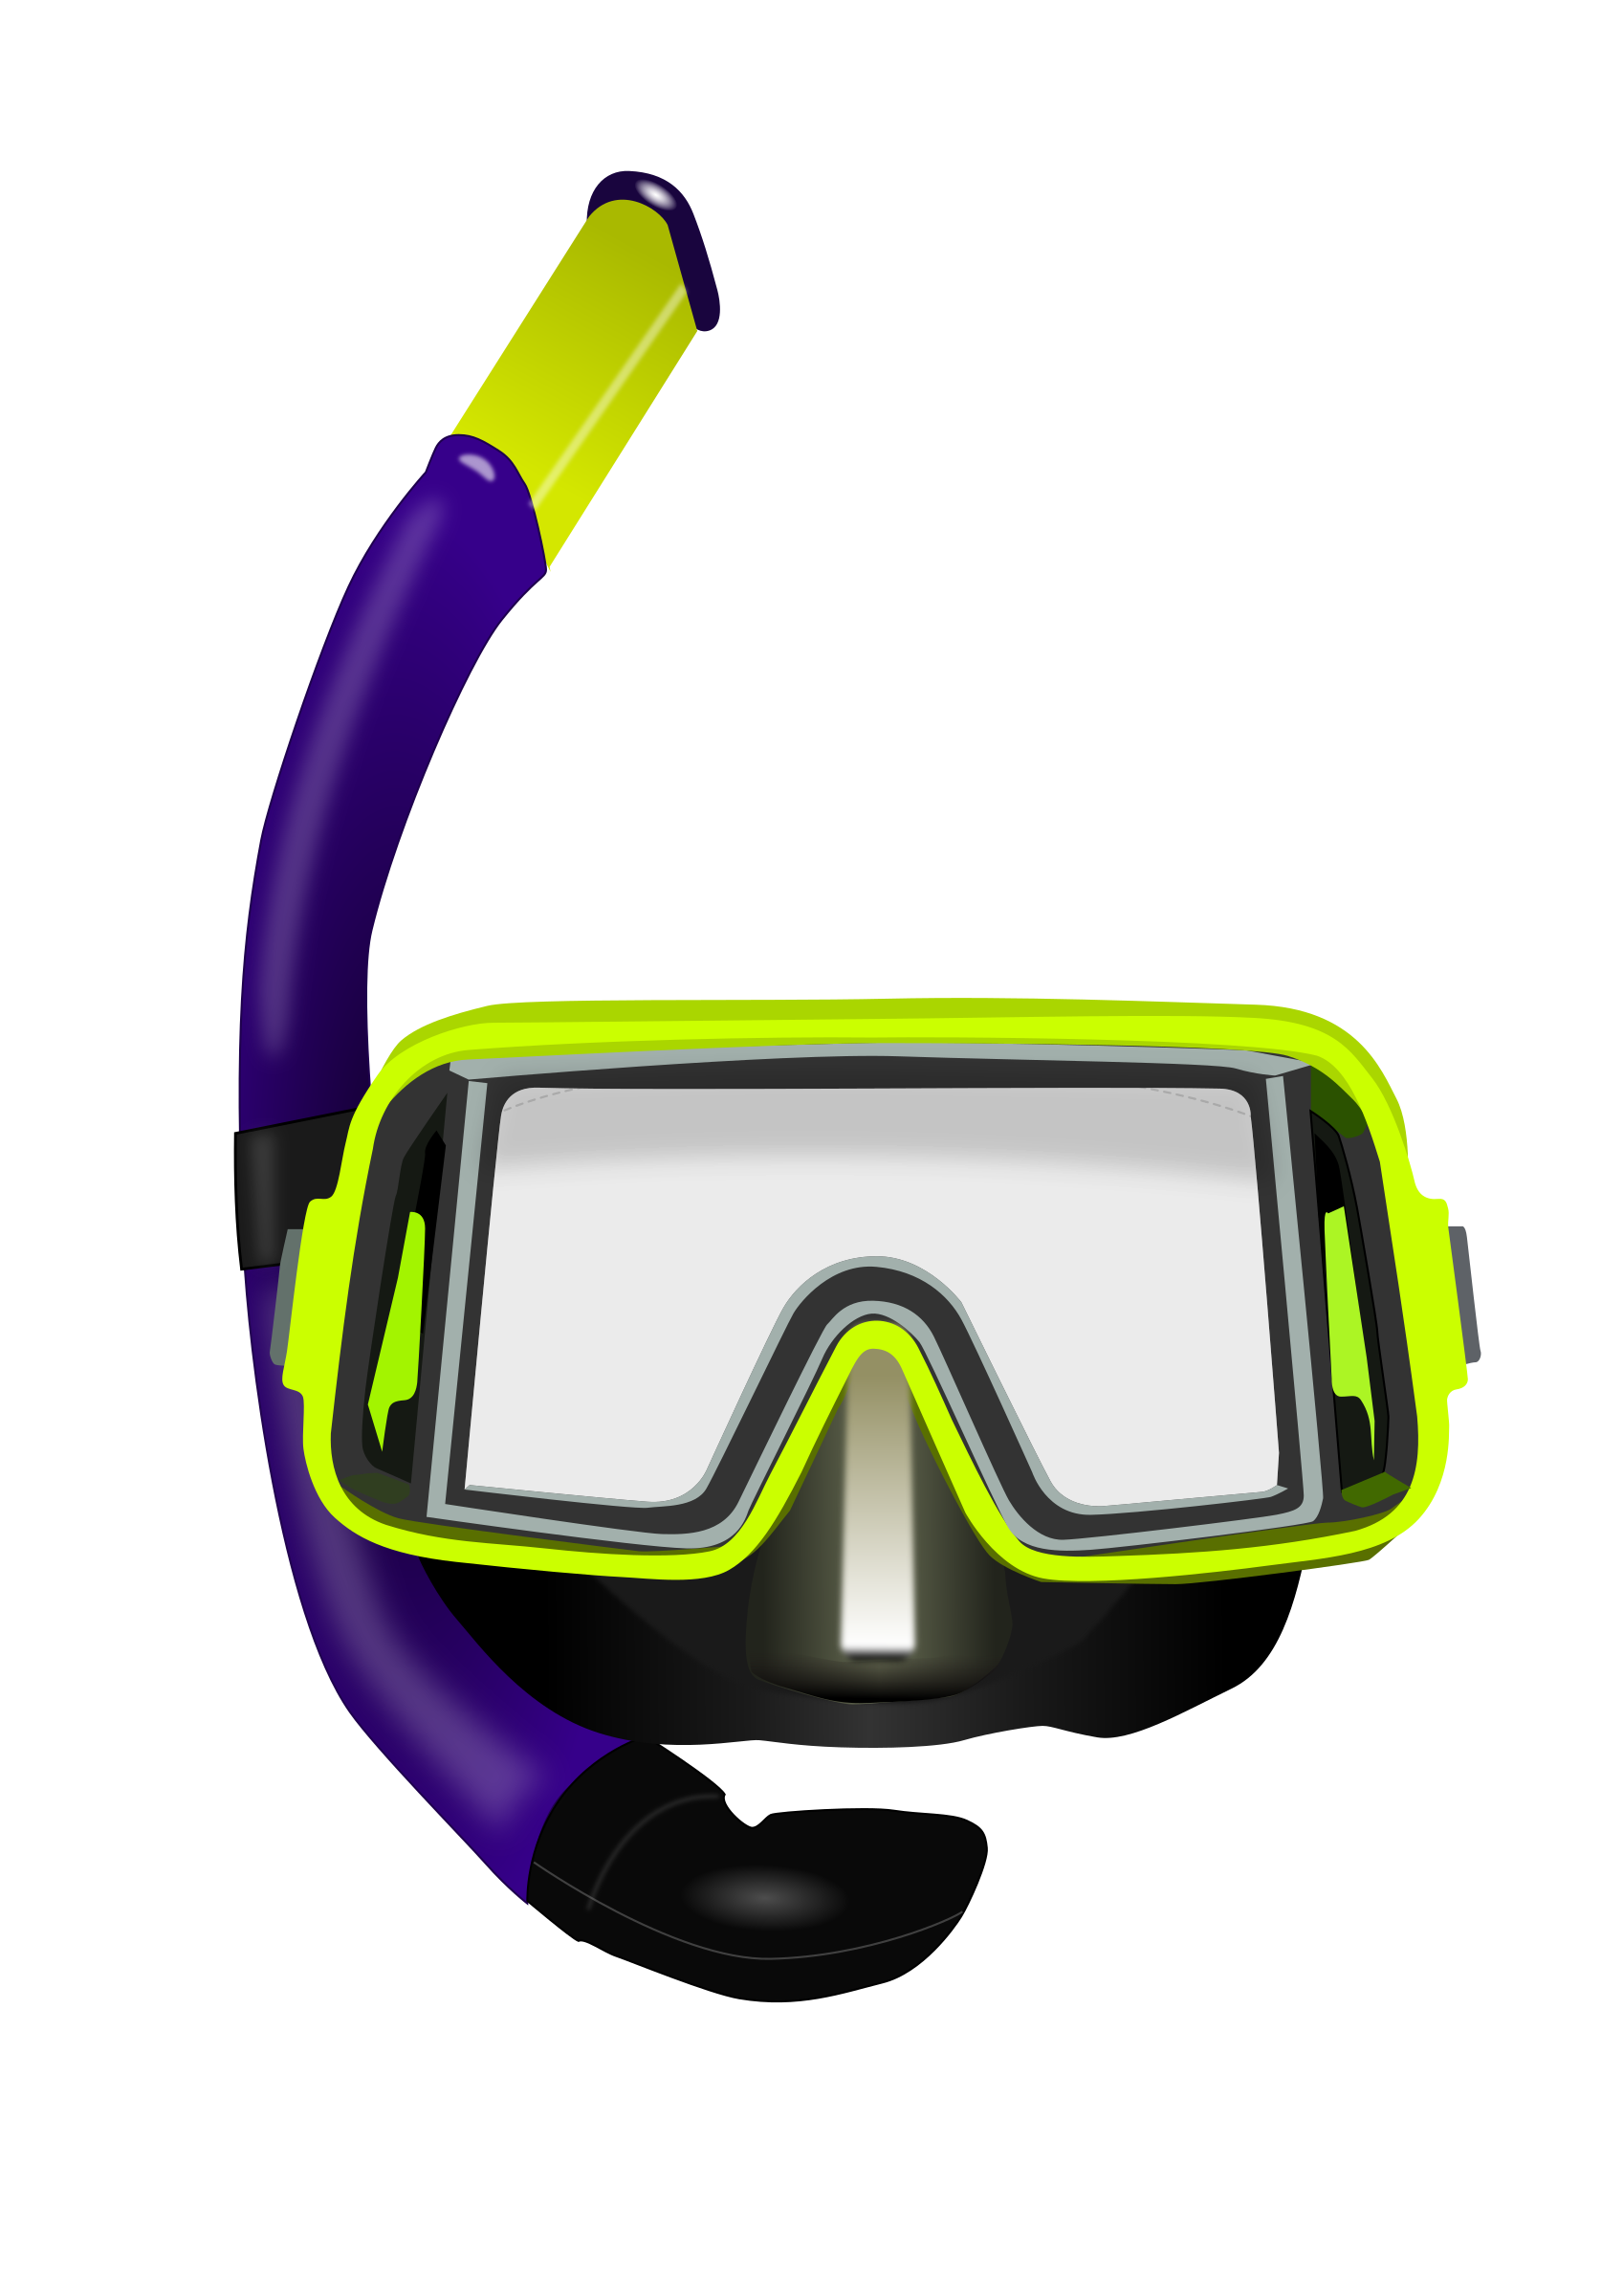 Goggles clipart diving goggles. Glasses big image png